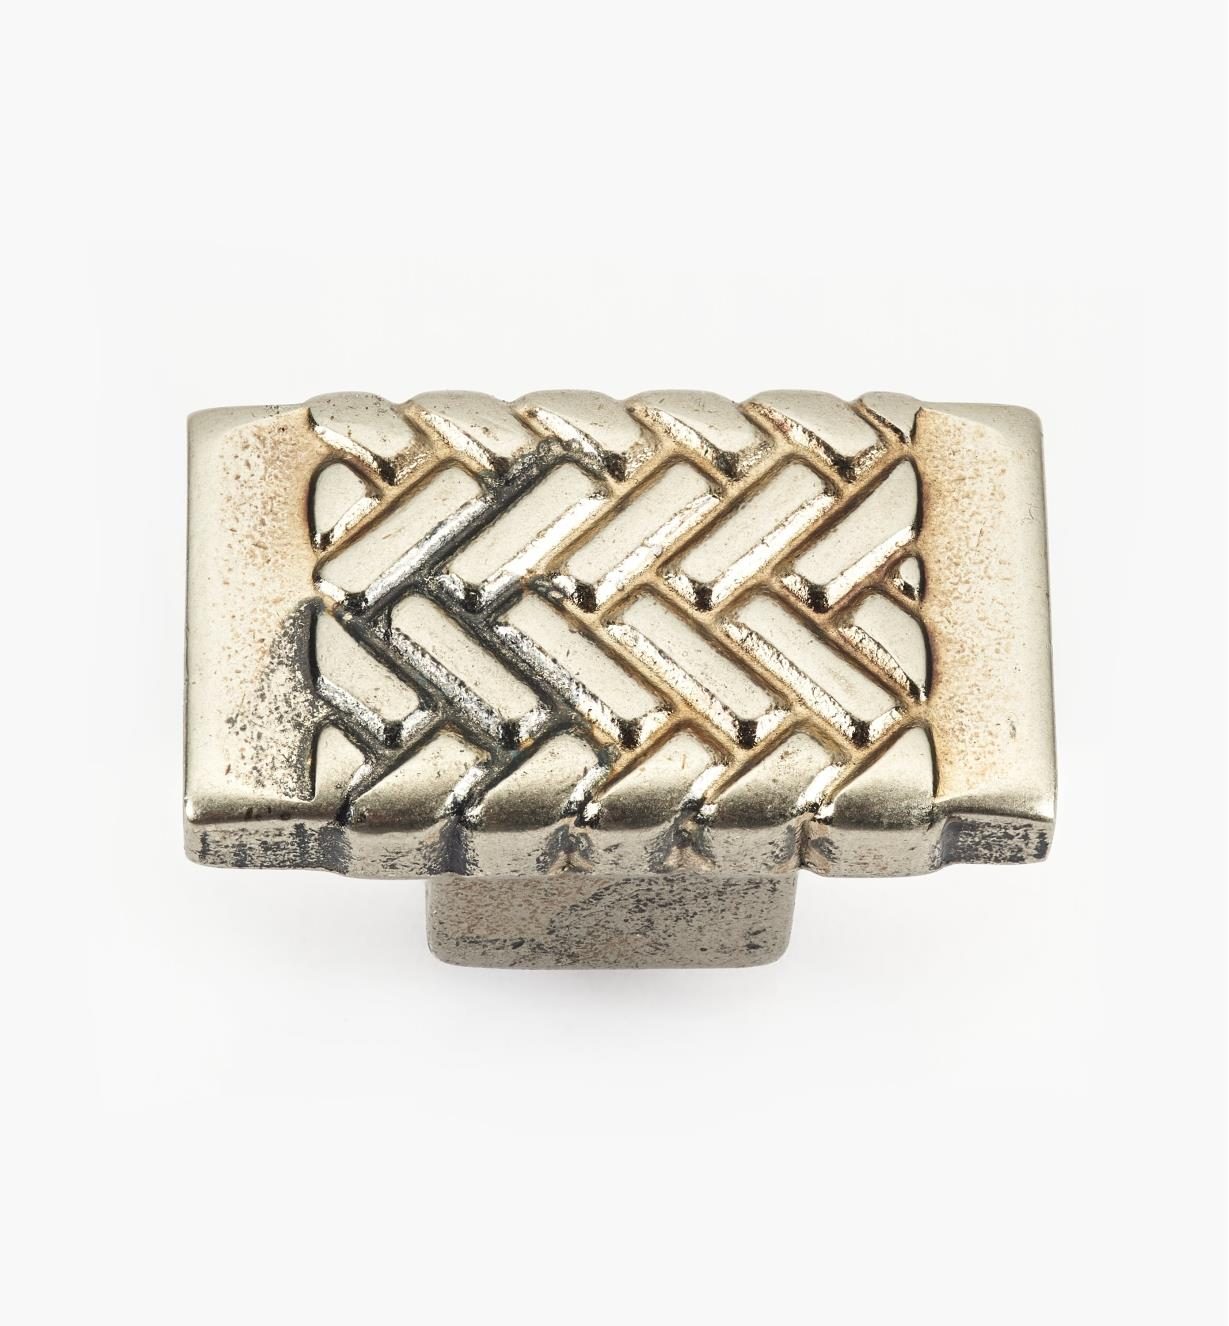 01G1951 - Antique Silver Herringbone Knob